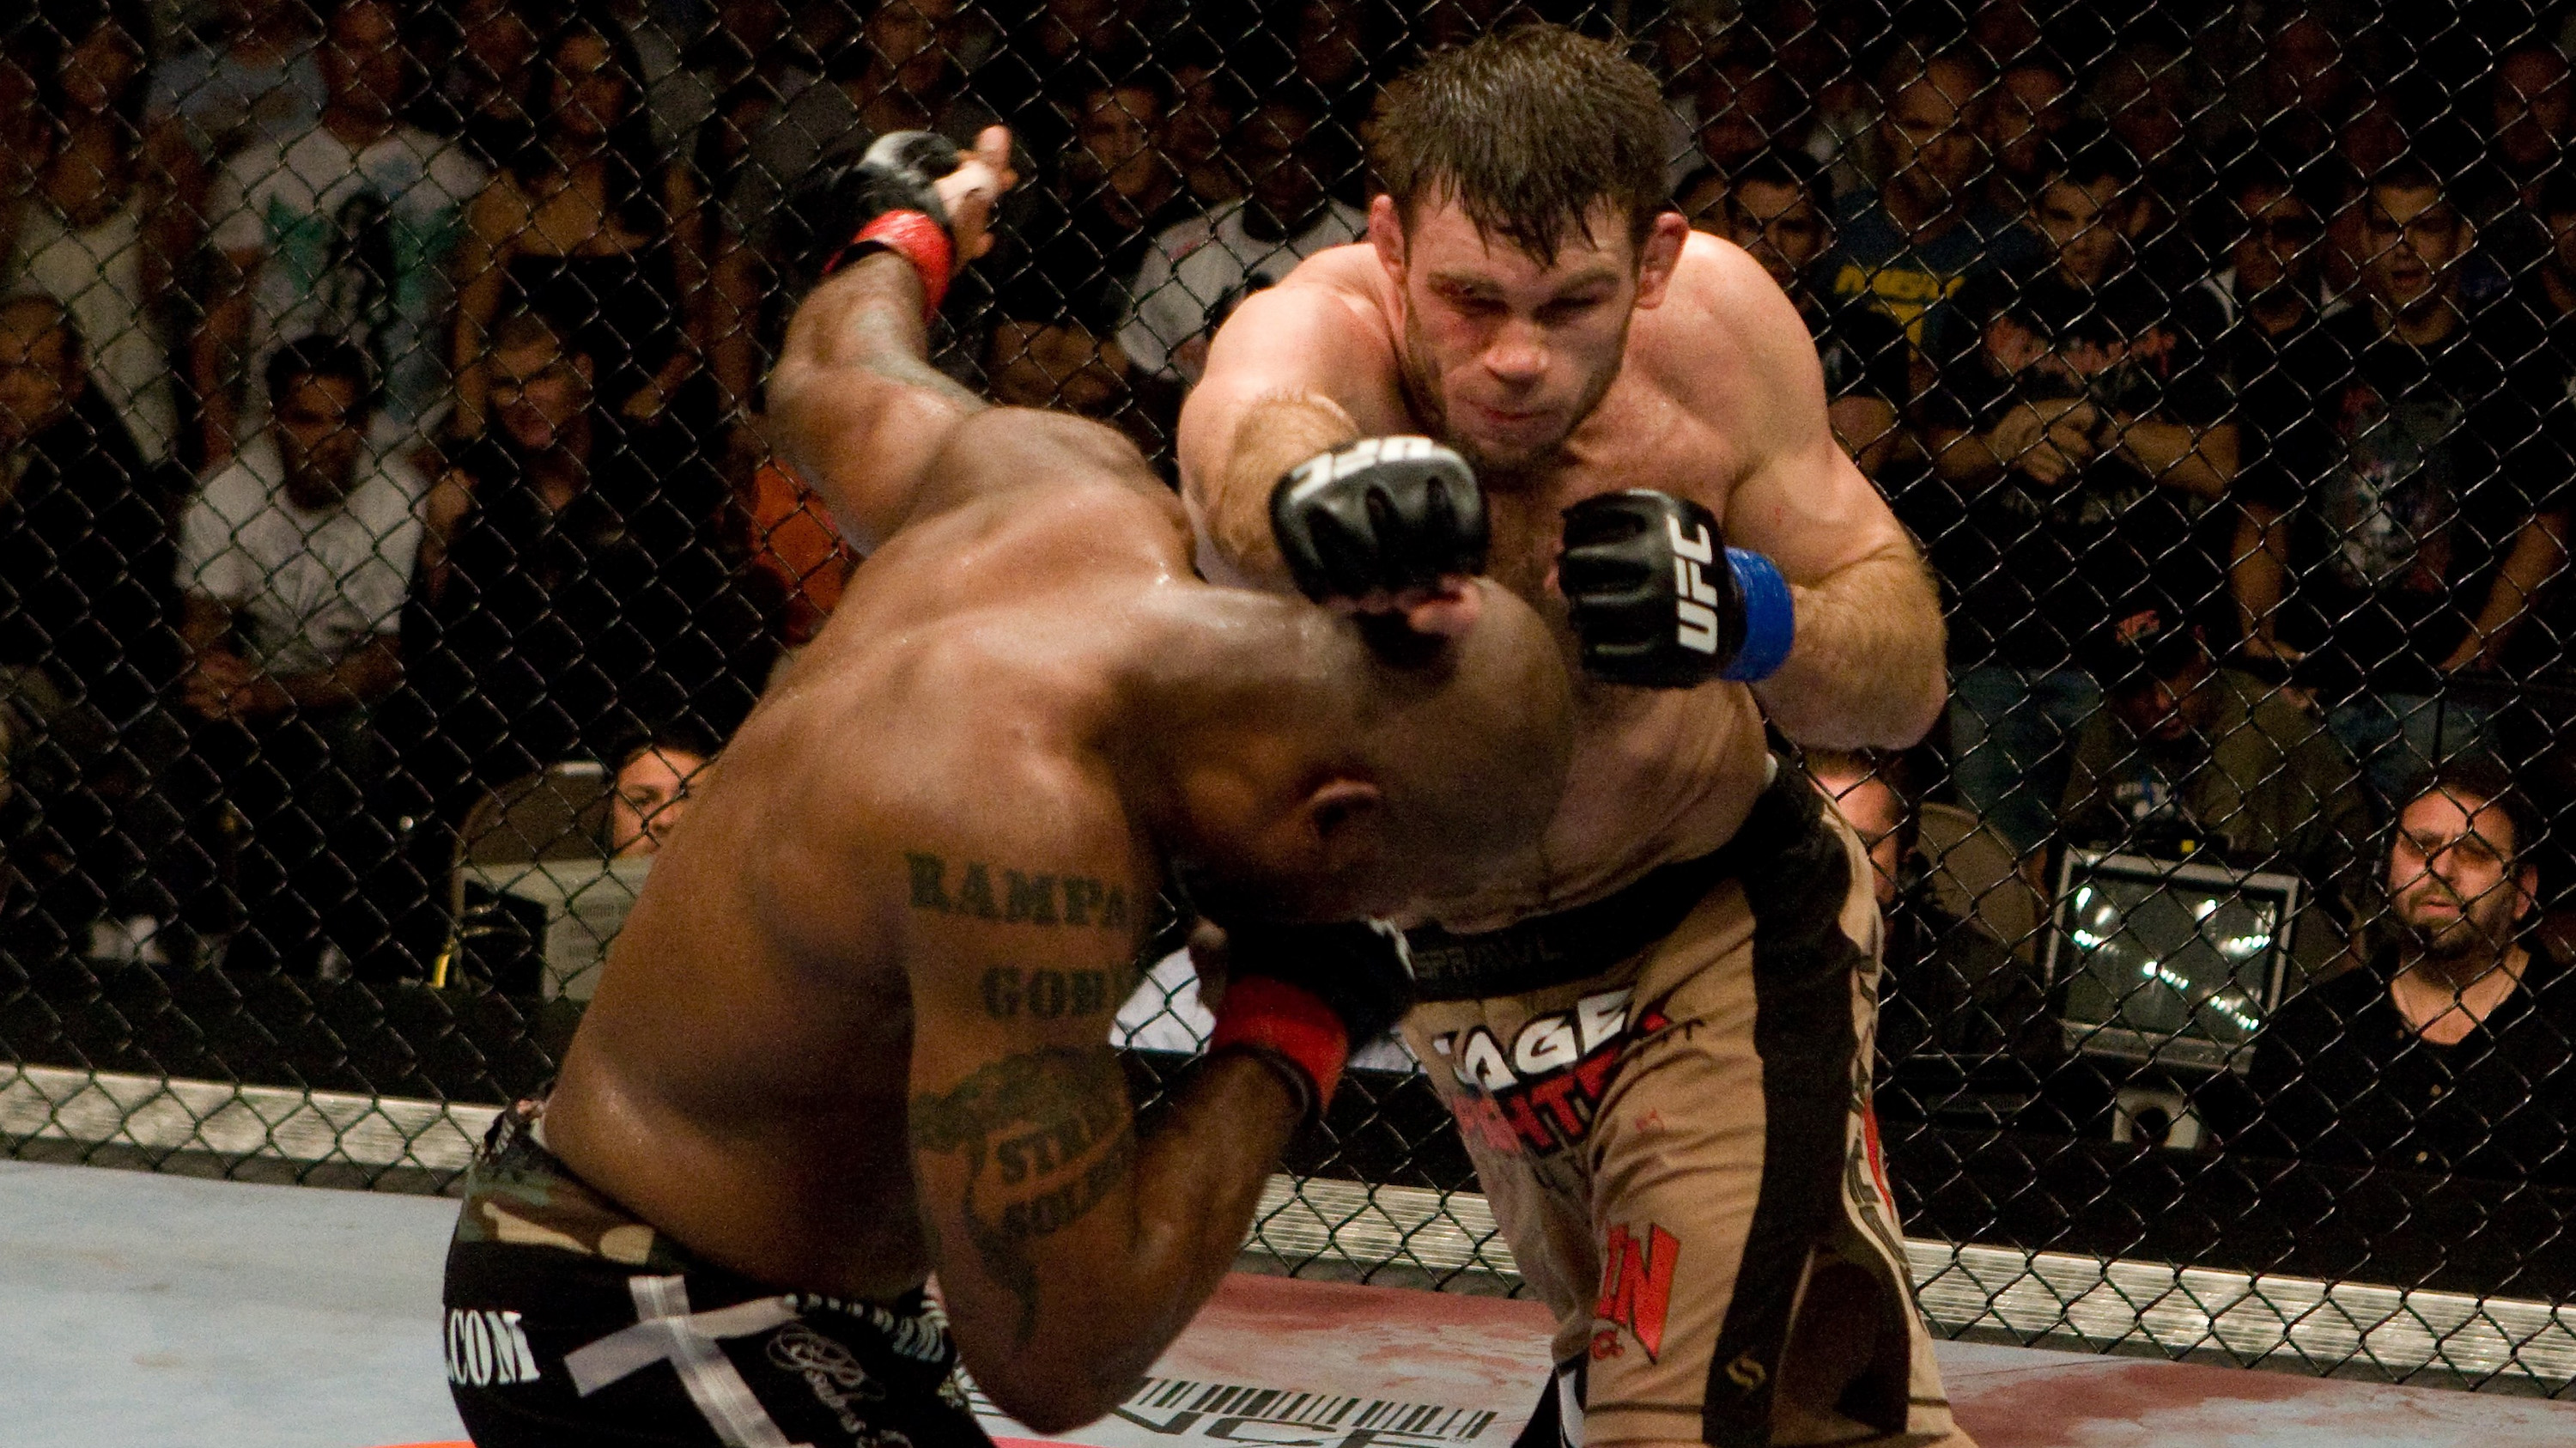 Griffin's crowning moment at UFC 86 when he defeated Rampage Jackson to become champion (Photo by: Josh Hedges/Zuffa LLC via Getty Images)